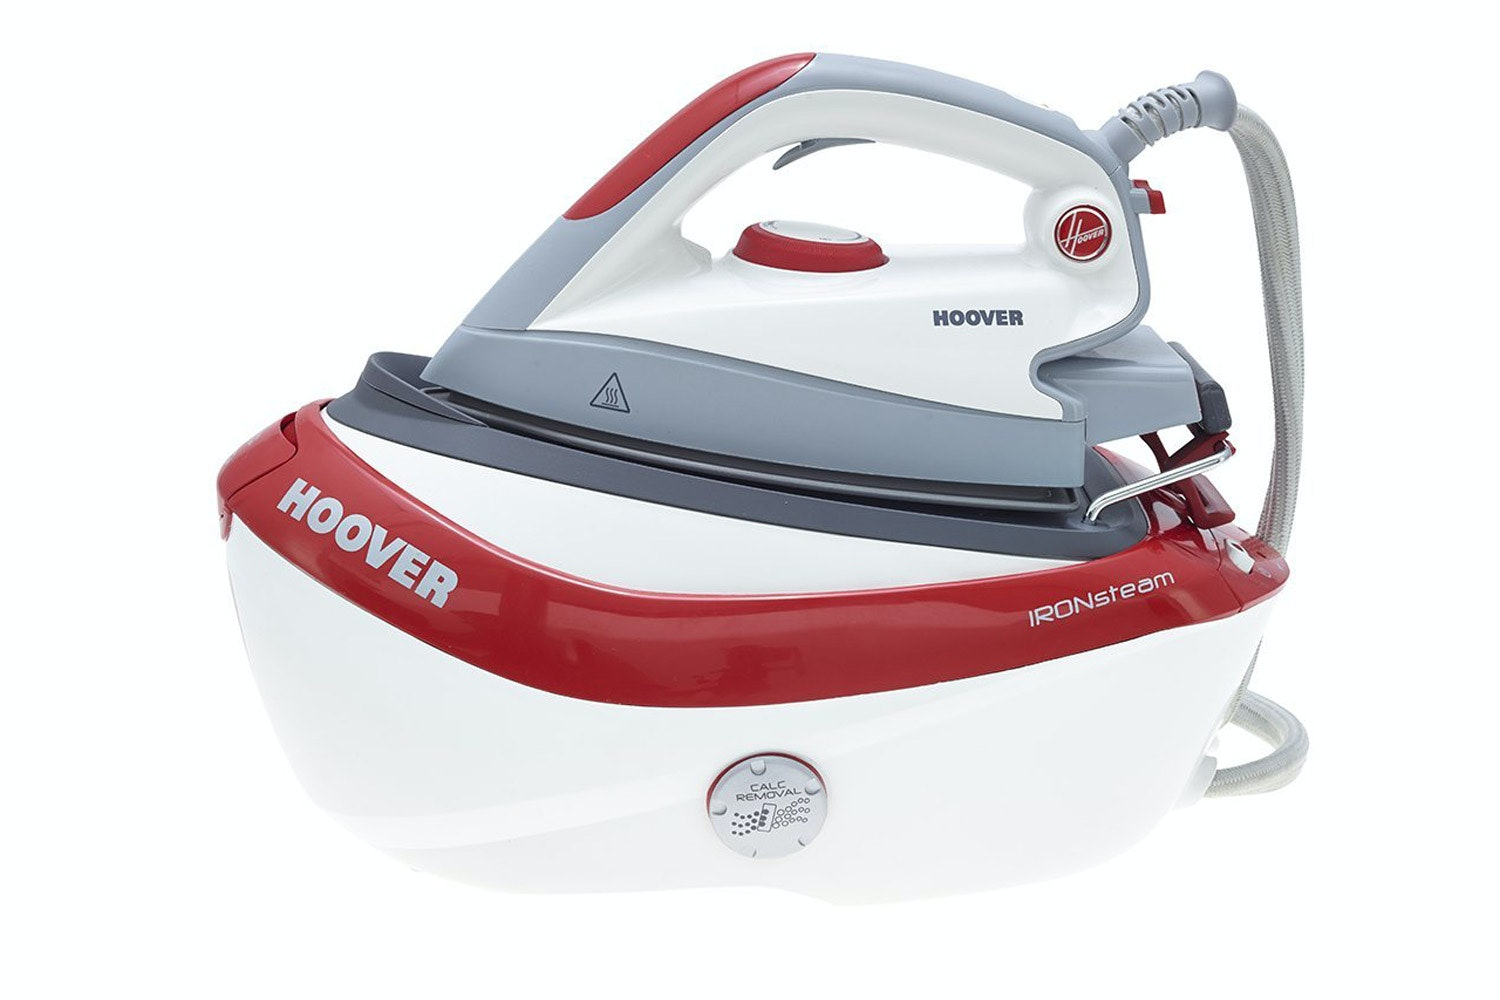 Hoover Steam Generator 2400W Iron | SFM4003